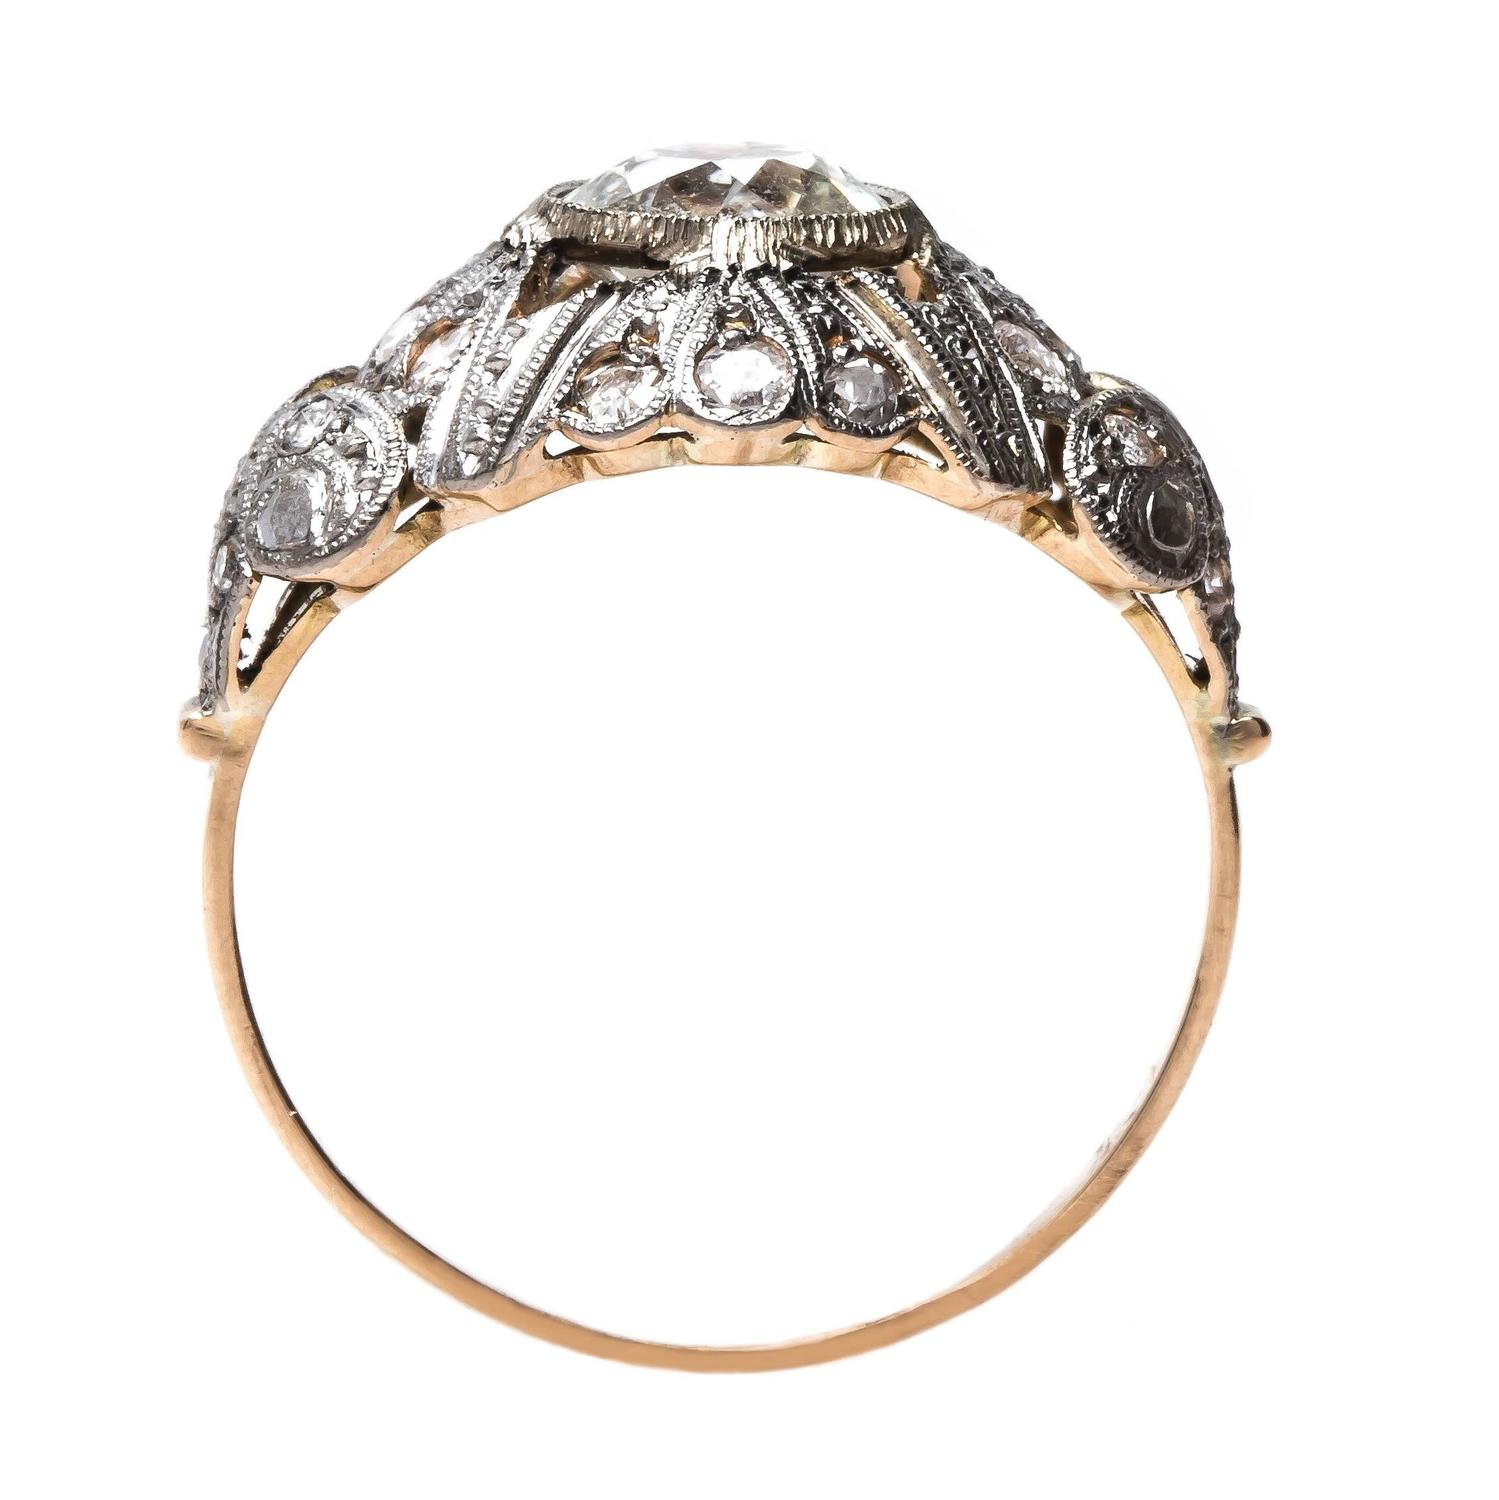 Art Nouveau diamond gold platinum Engagement Ring For Sale at 1stdibs